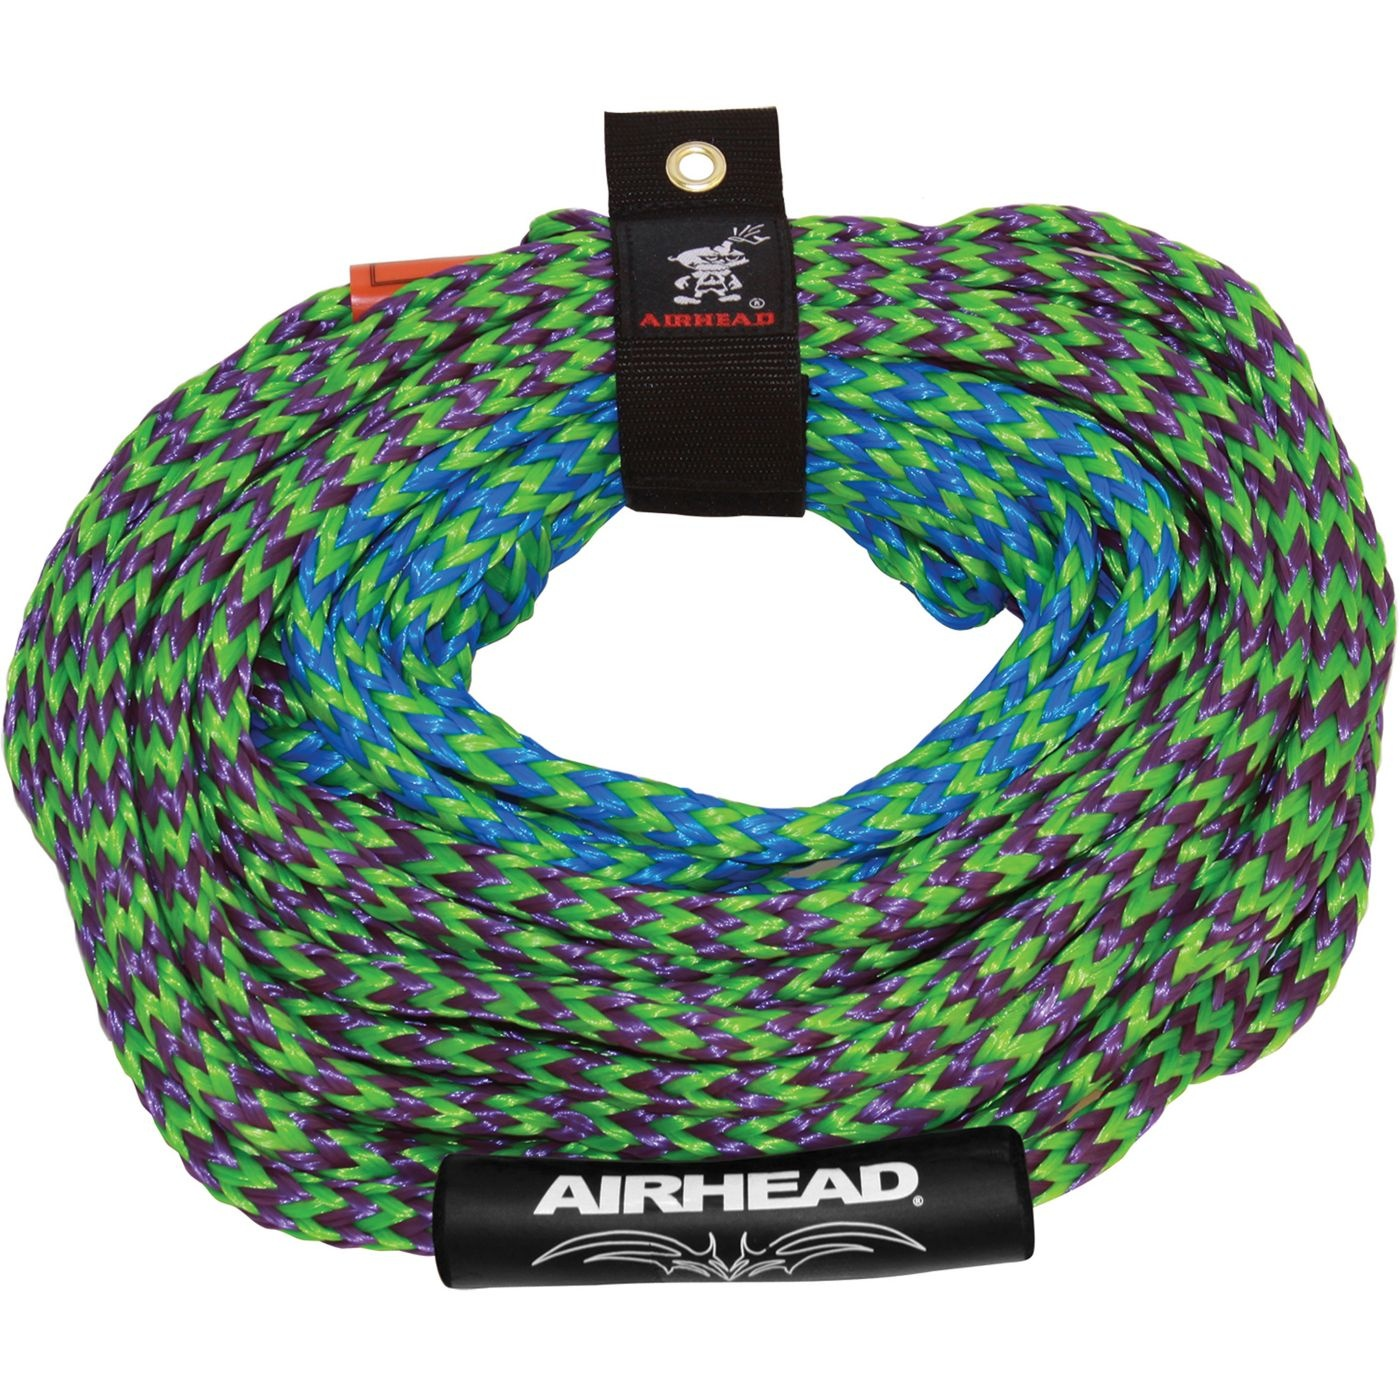 Airhead Tow Harness Sports Outdoors Buy Online From Boat